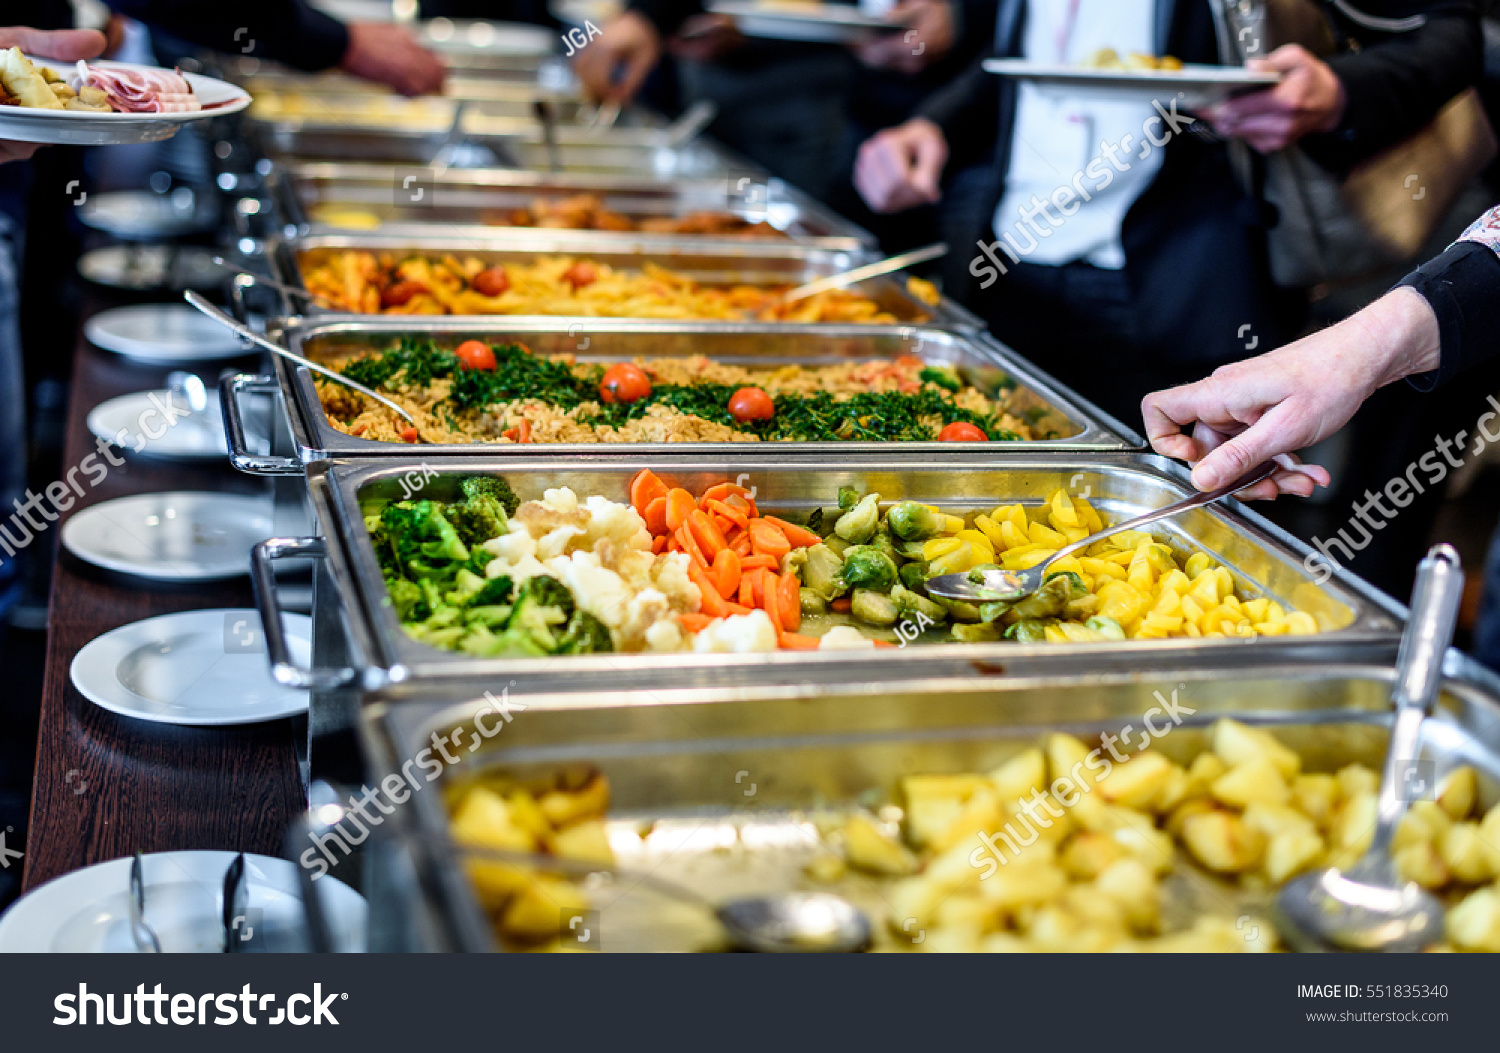 cuisine culinary buffet dinner catering dining stock photo 551835340 shutterstock. Black Bedroom Furniture Sets. Home Design Ideas